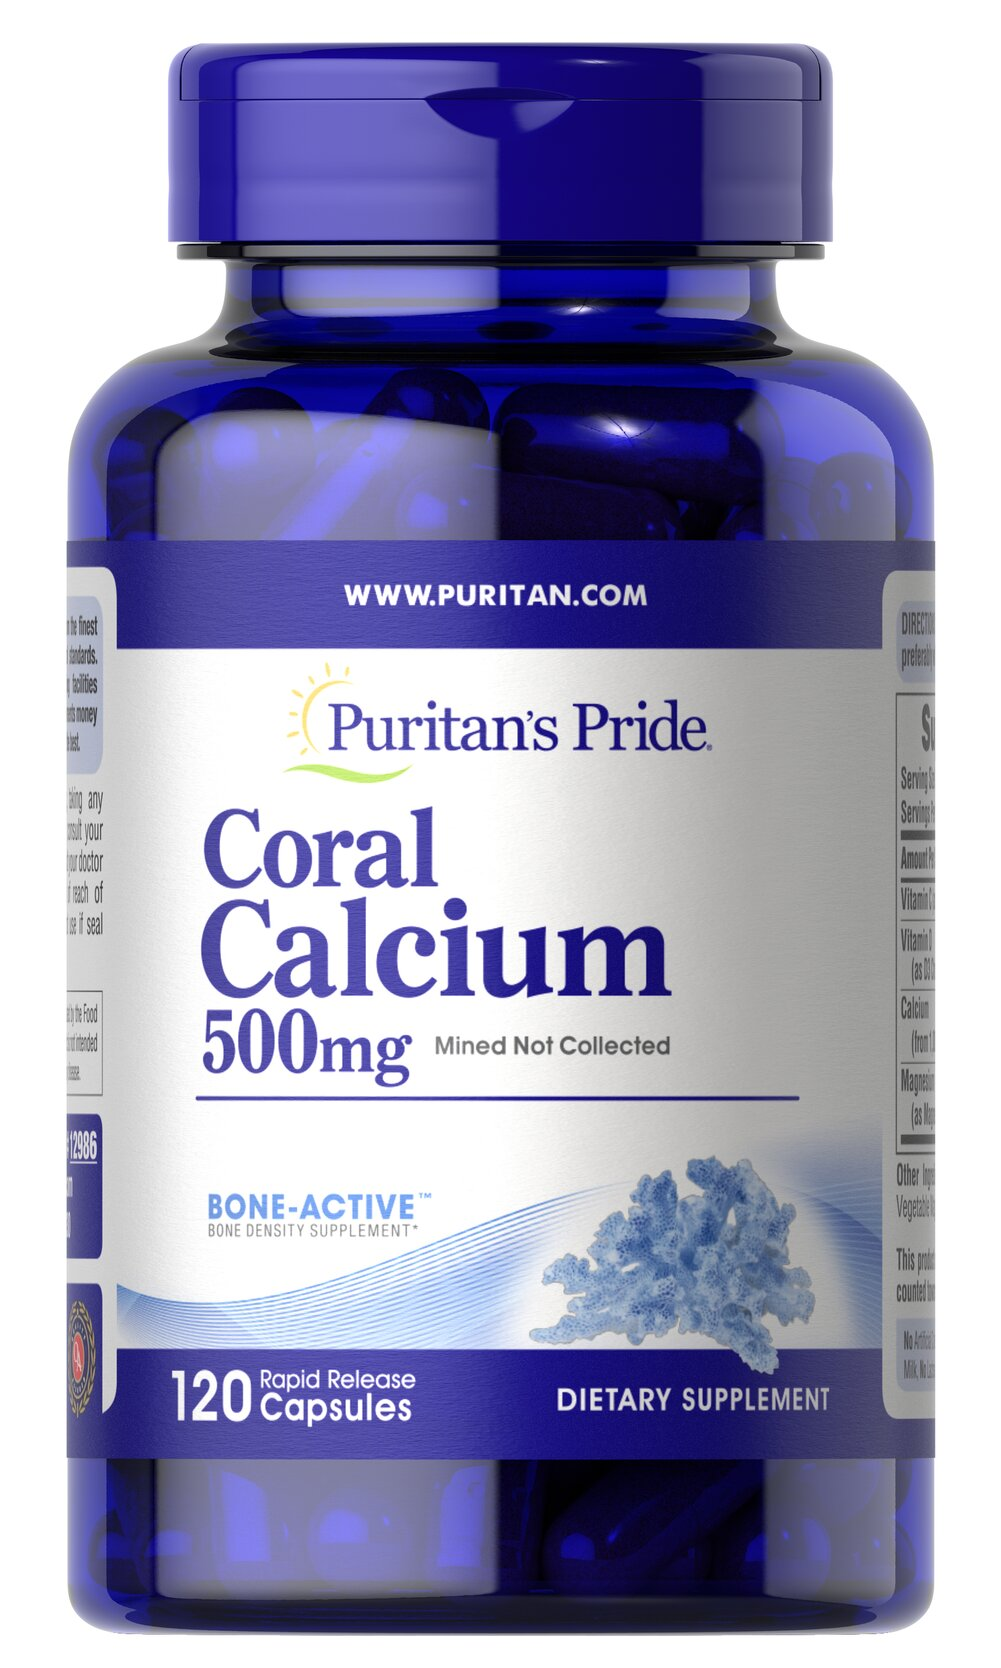 Coral Calcium Complex <p>Today's modern farming and food processing methods can often deplete valuable minerals from our diet. Our Coral Calcium formulation includes Coral Calcium, Magnesium and Vitamin C for bone health, plus Vitamin D to aid in Calcium absorption.** The Coral Calcium in this product is mined, not collected, from an above ground source making it environmentally friendly.</p> 120 Capsules  $15.99